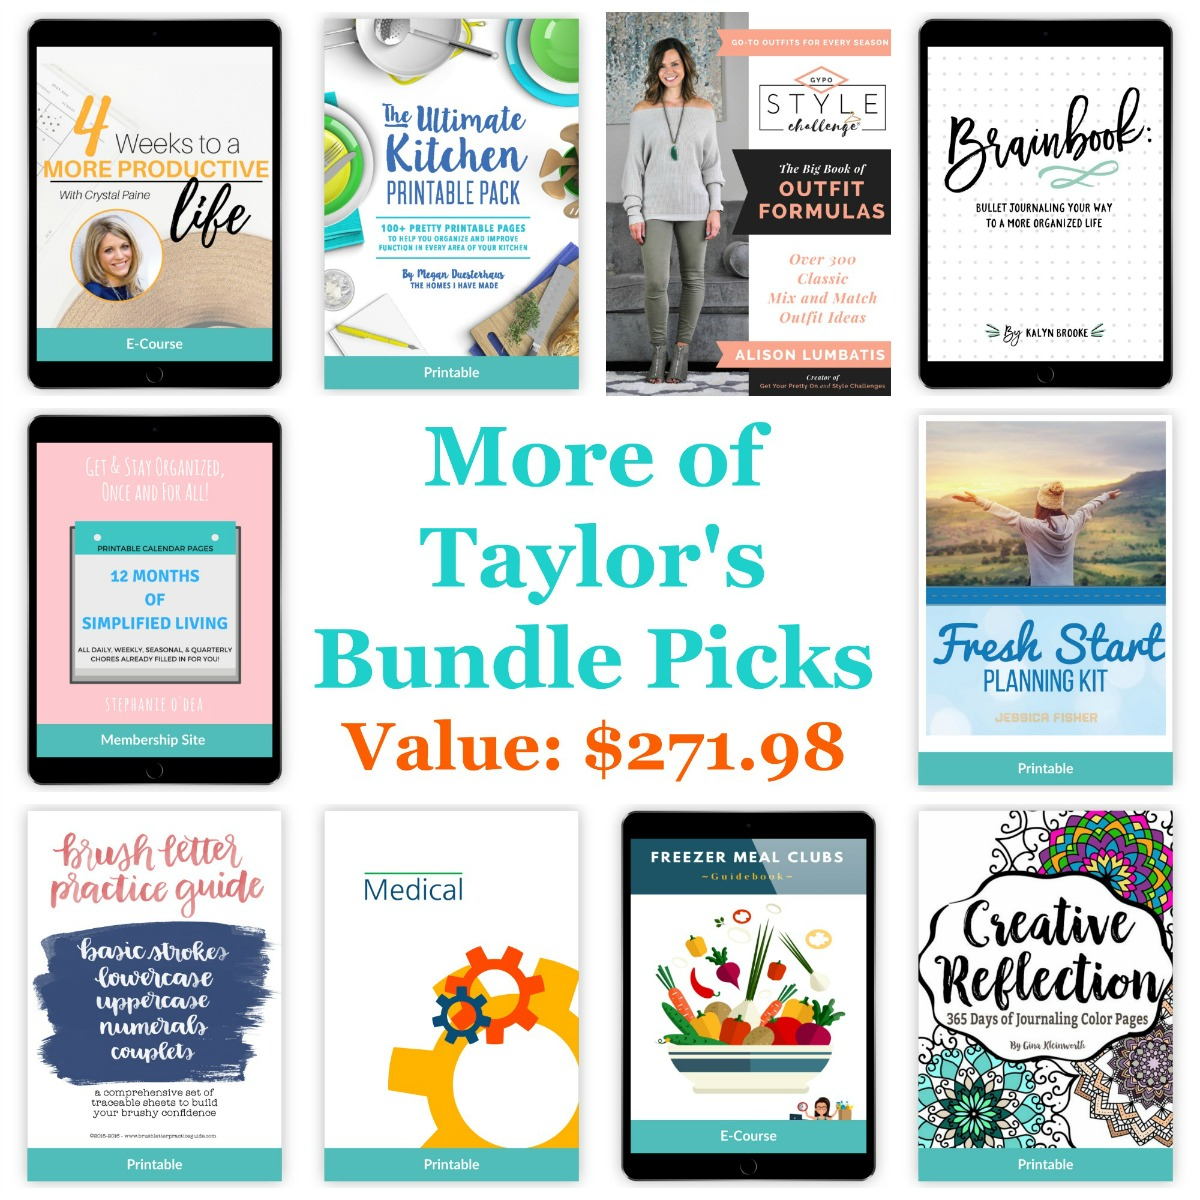 Even more of Taylor's bundle picks